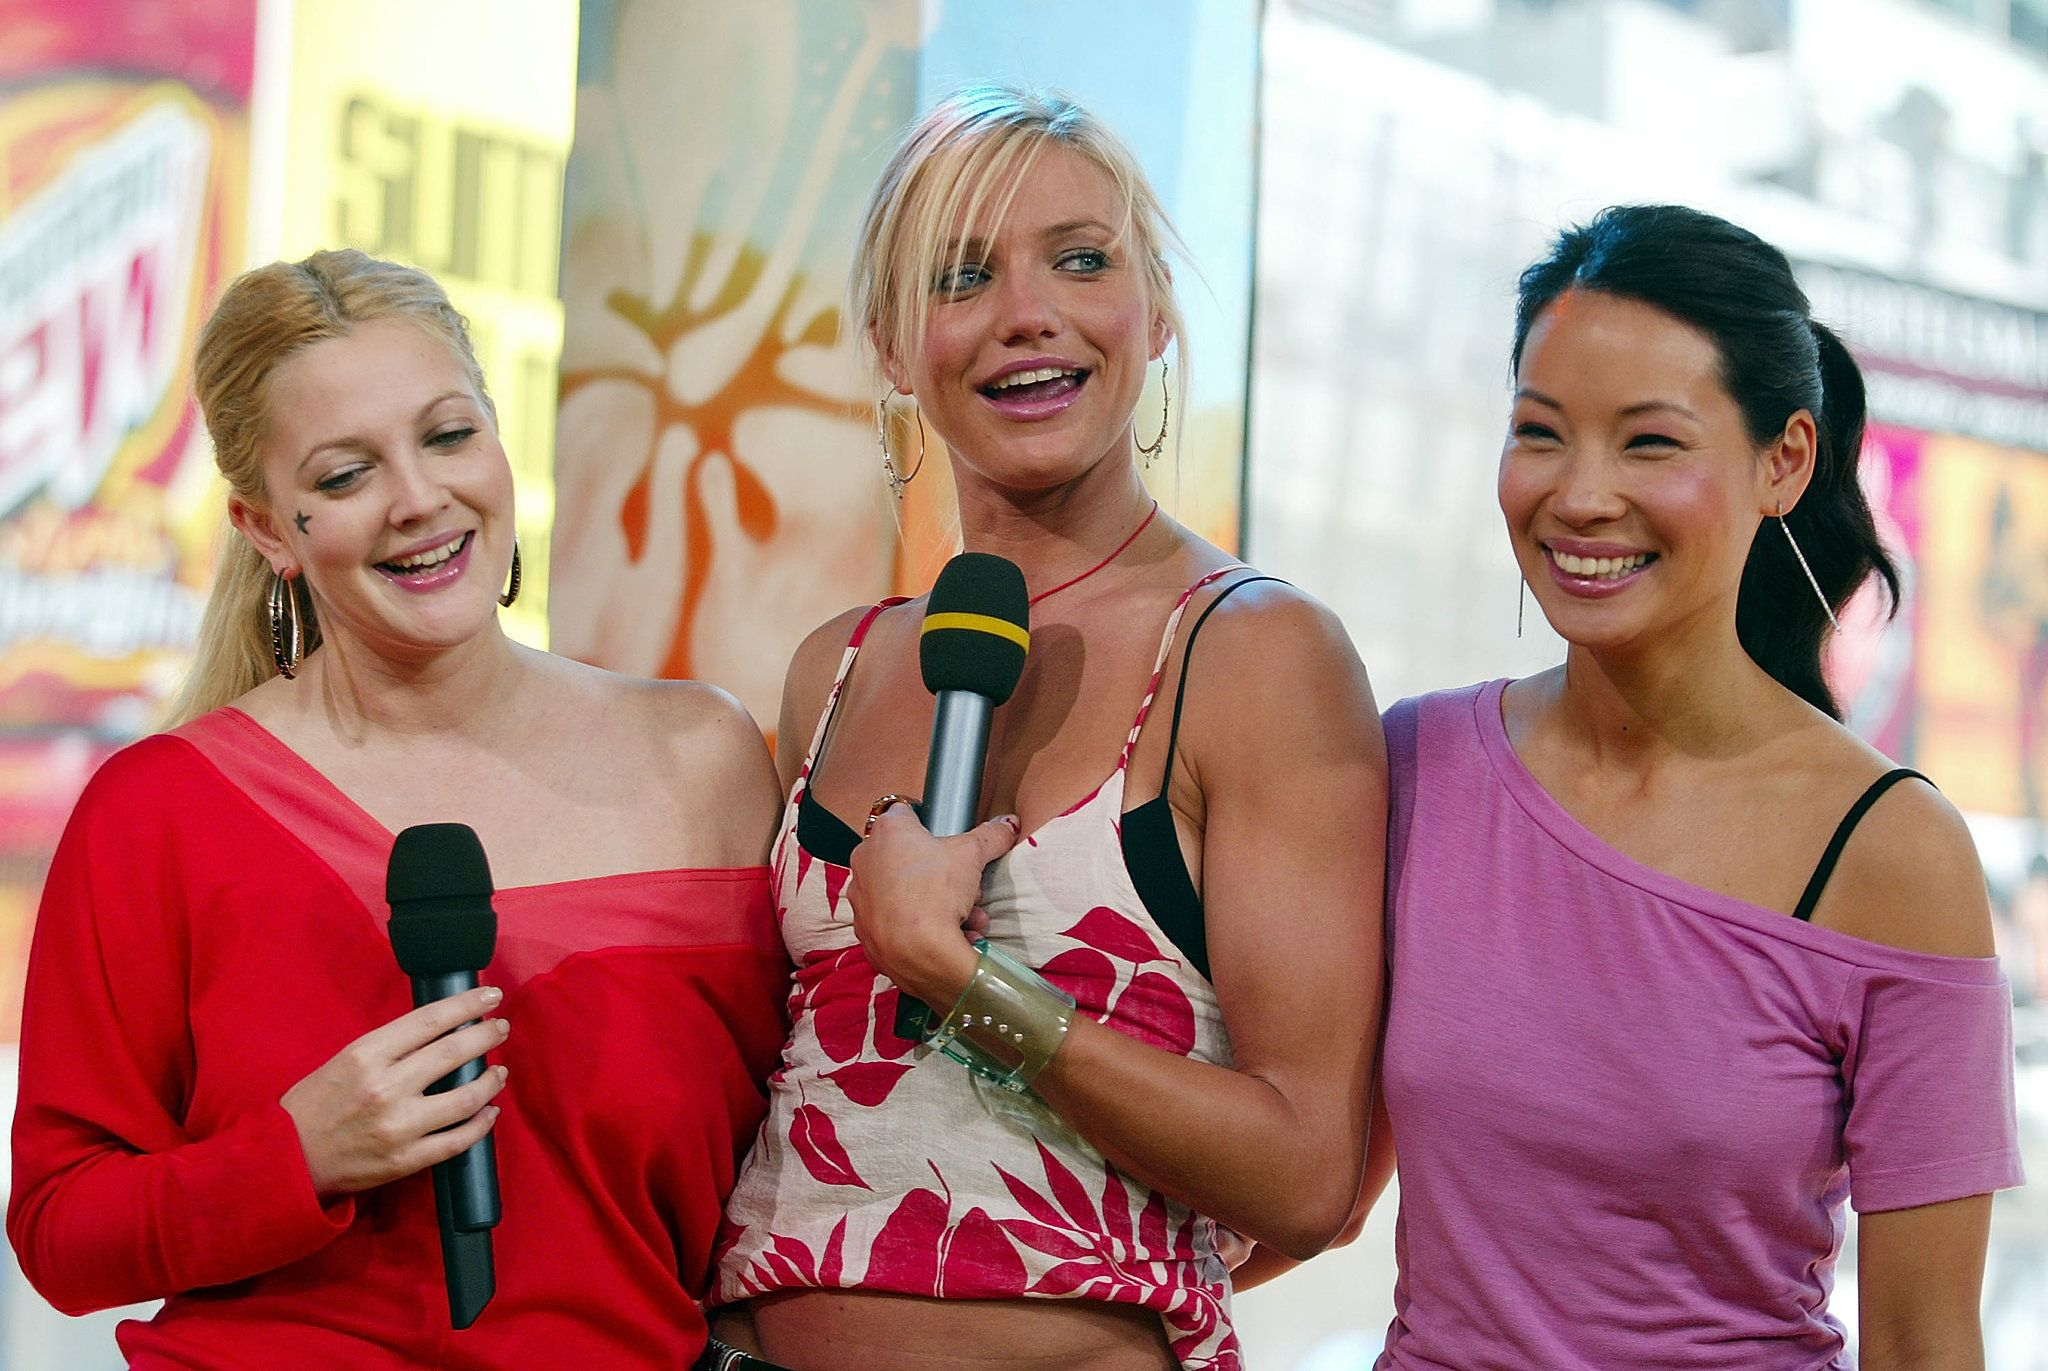 Drew Barrymore, Cameron Diaz, and Lucy Liu promoted Charlie's Angels: Full Throttle on